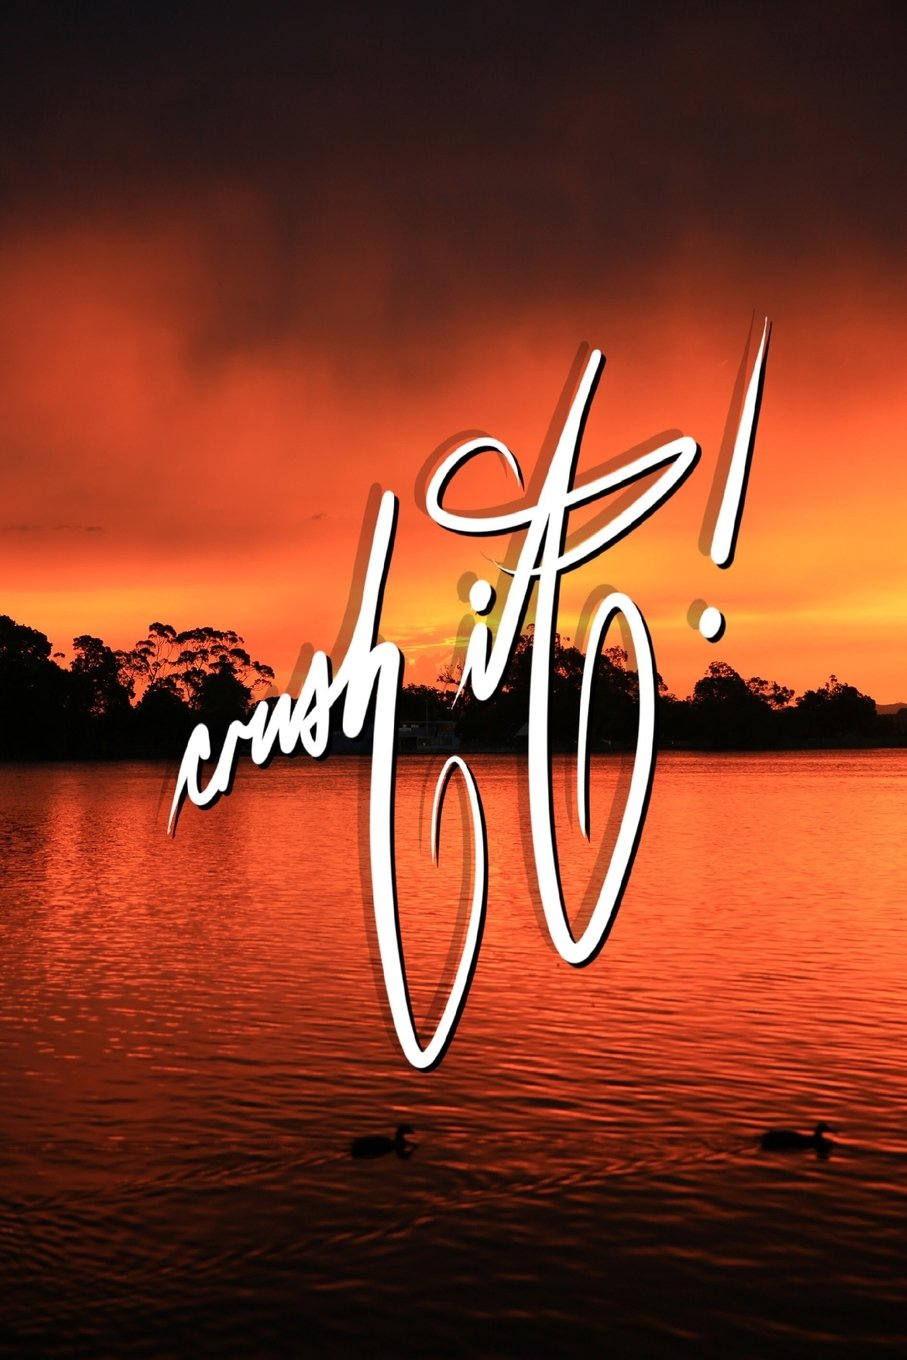 Crush it: 6x9 Inch Lined Journal/Notebook to remind you to get up and at it! - Stunning Sunset, Red, Lake, Nature, Calligraphy Art with photography, Gift idea PDF ePub book